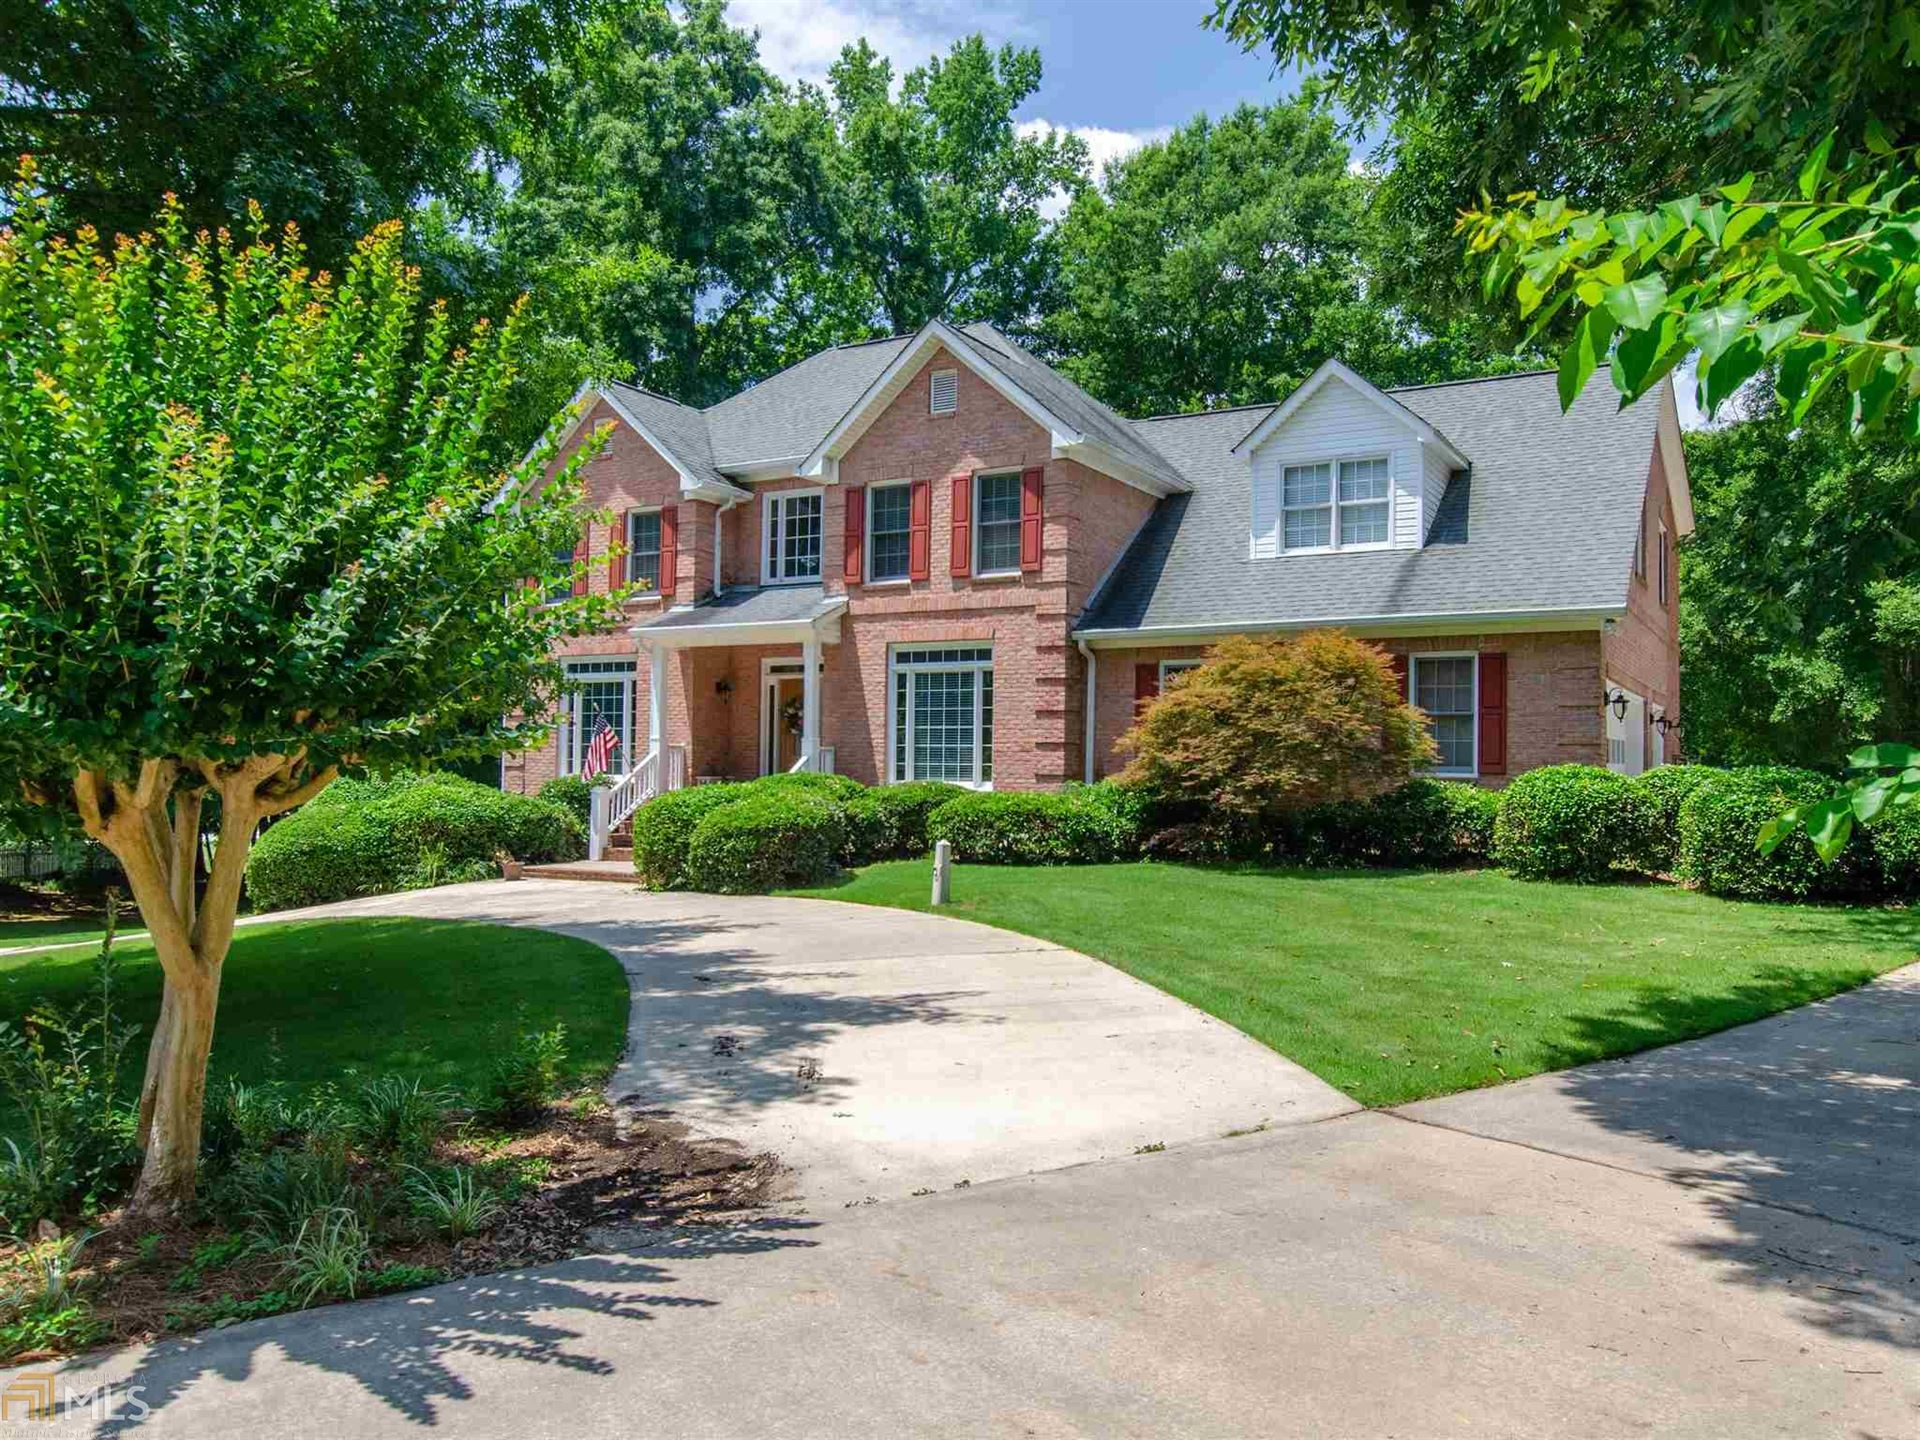 95 Torrey Pines Ct, Newnan, GA 30265 - MLS#: 8736675